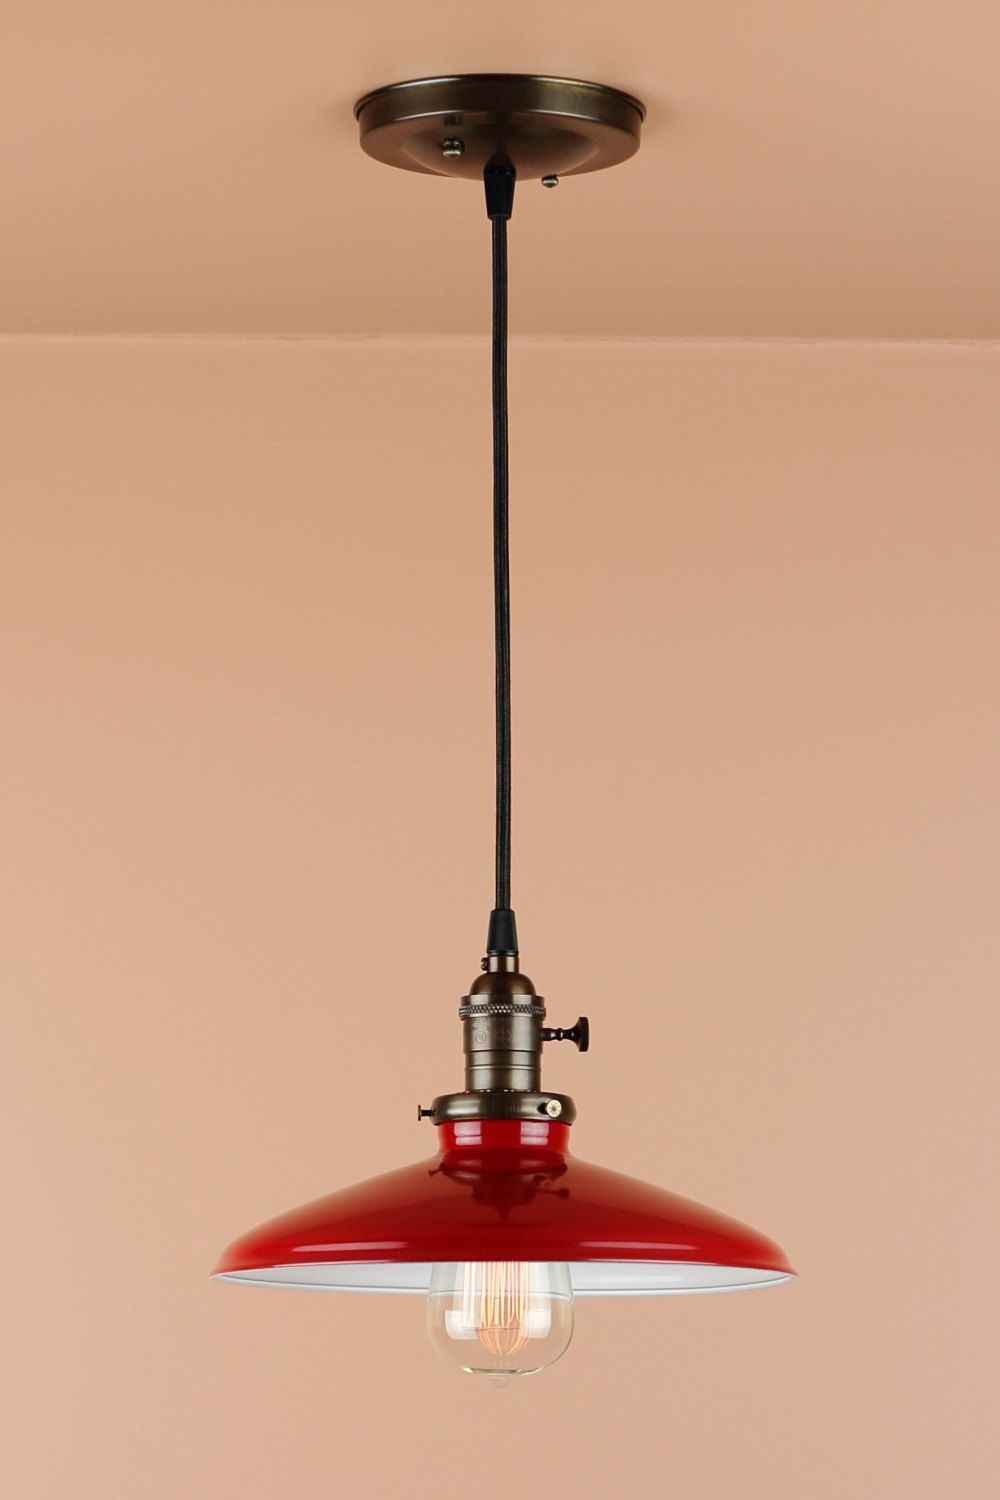 red pendant lighting. Pendant Lighting W/ 10 Inch Cherry Red Porcelain By BlueMoonLights - I Purchased This Light